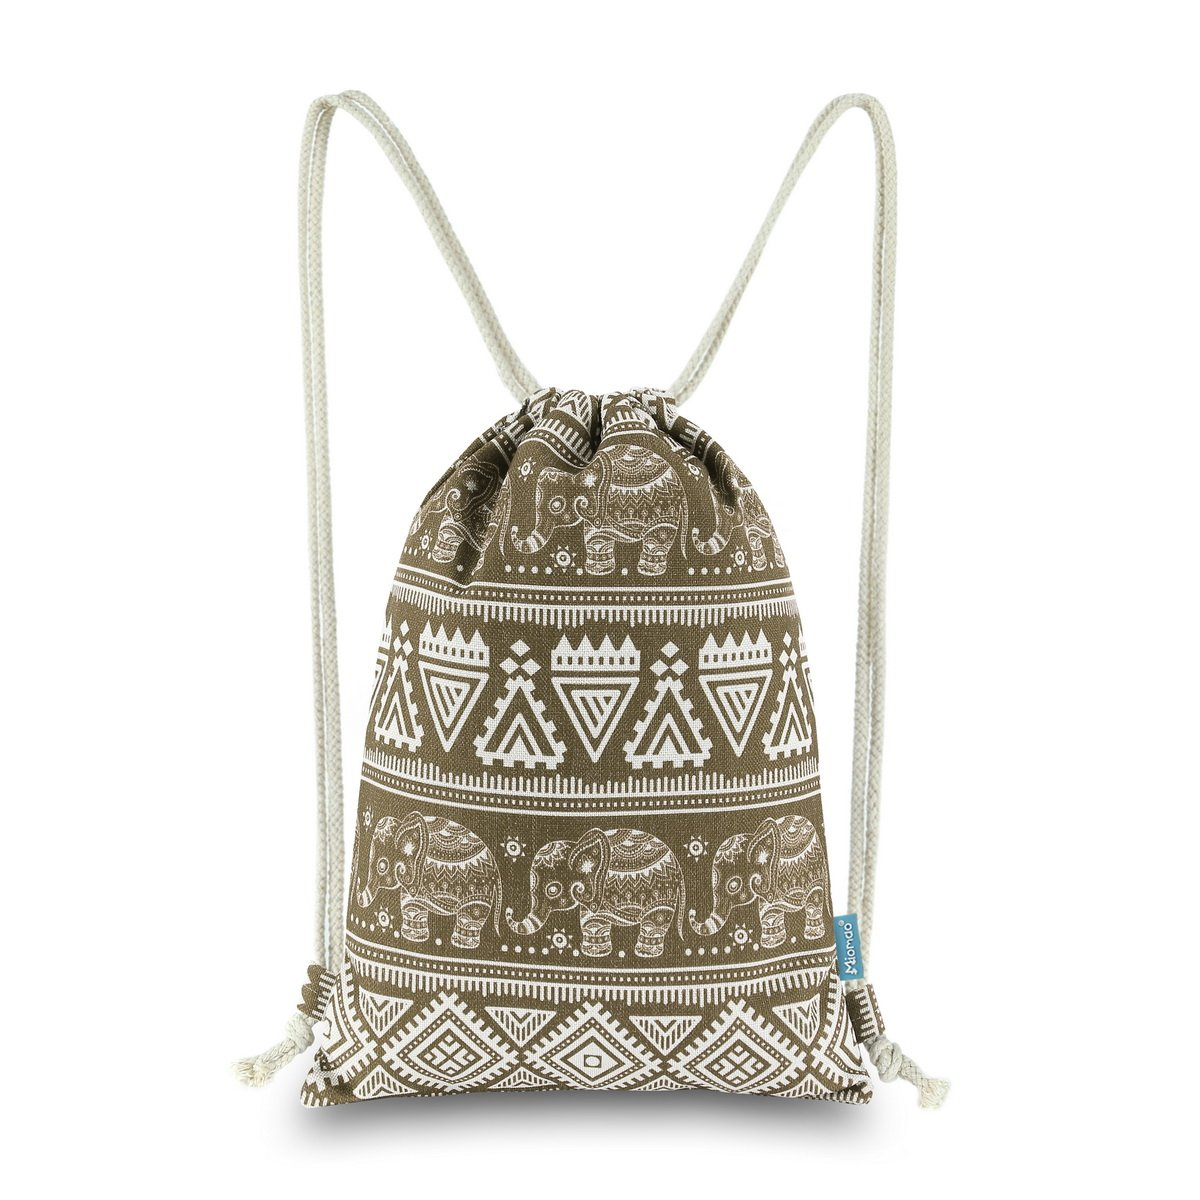 Miomao Drawstring Backpack Elephant String Bag Geometric Gym Sackpack Canvas Sinch Sack Sport Cinch Bag, 13'' X 18'', Coffee